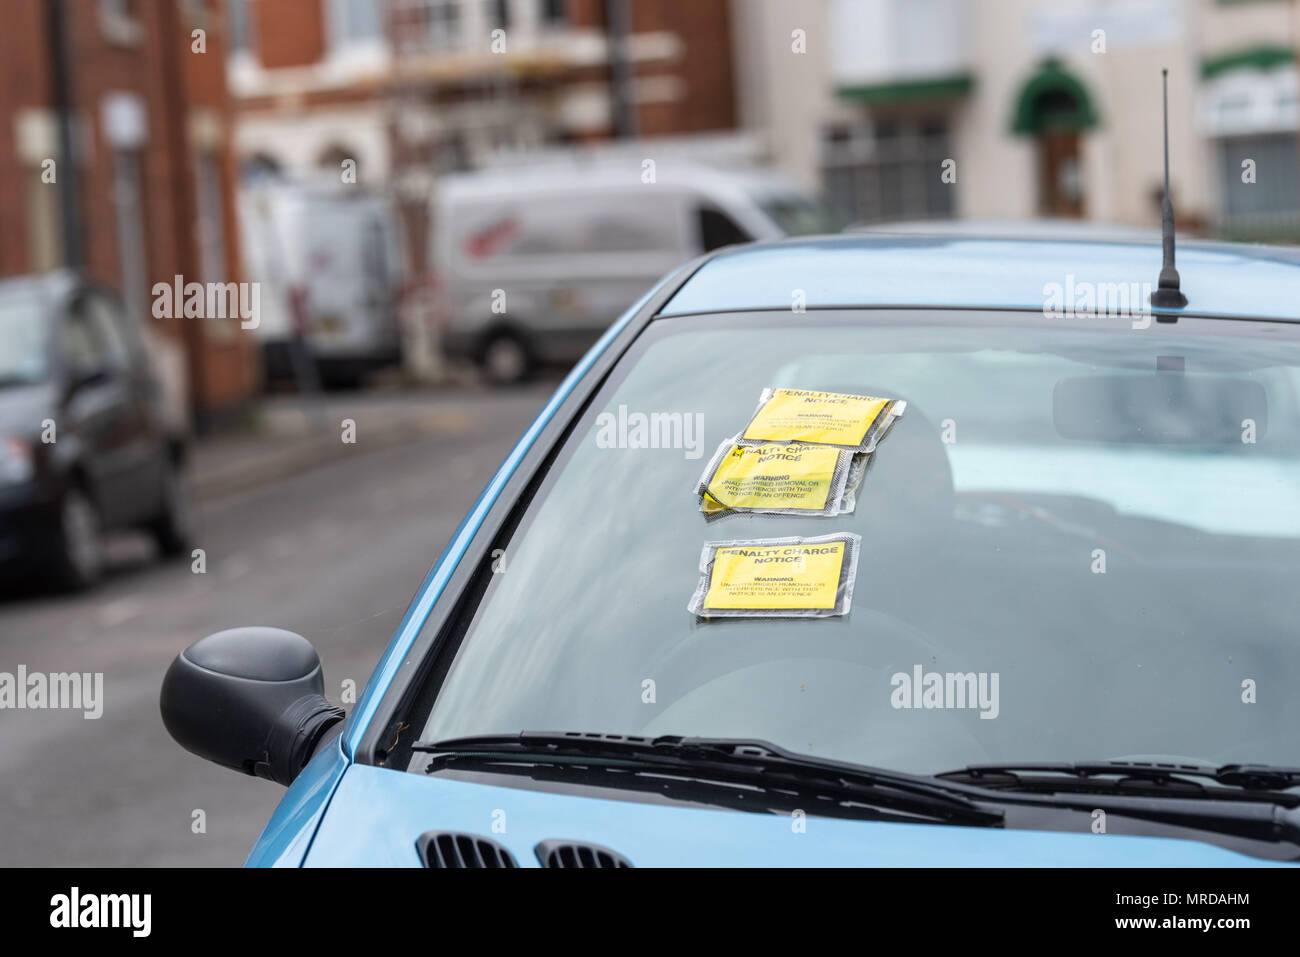 Penalty Charge Notice on Car Windscreen parked on British road in England. - Stock Image